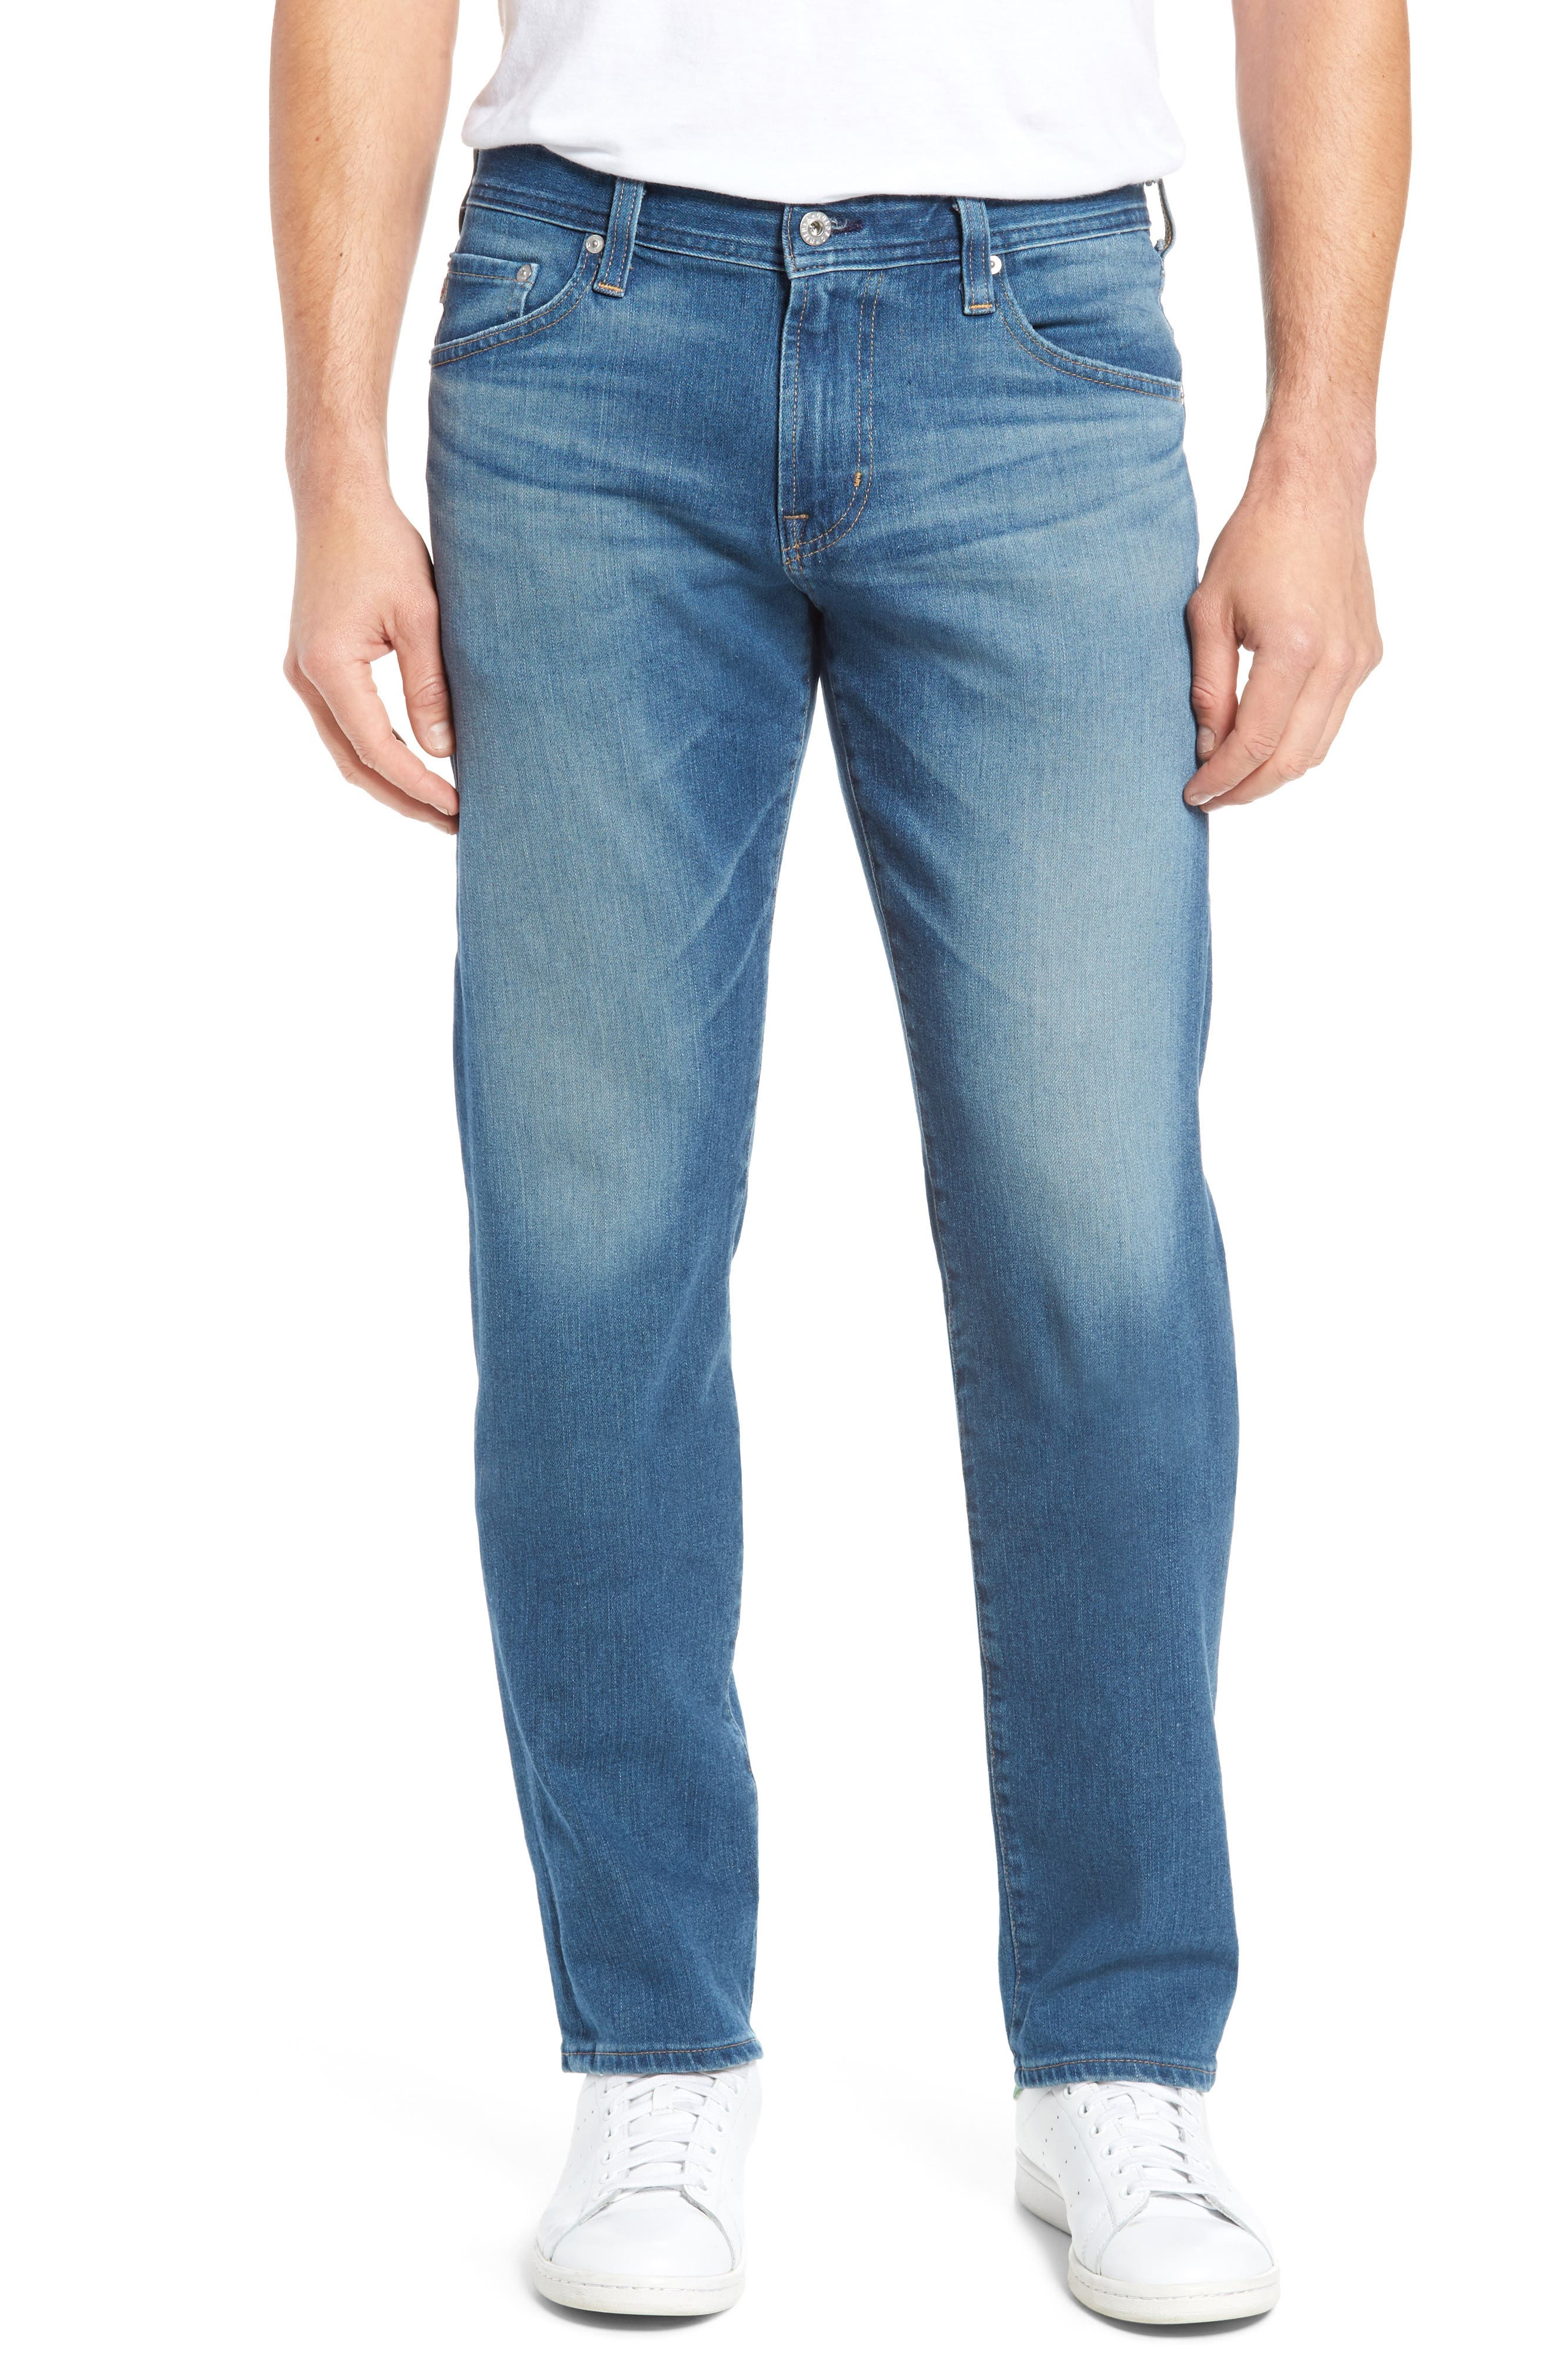 Alternate Image 1 Selected - AG Graduate Slim Straight Fit Jeans (Typewriter)